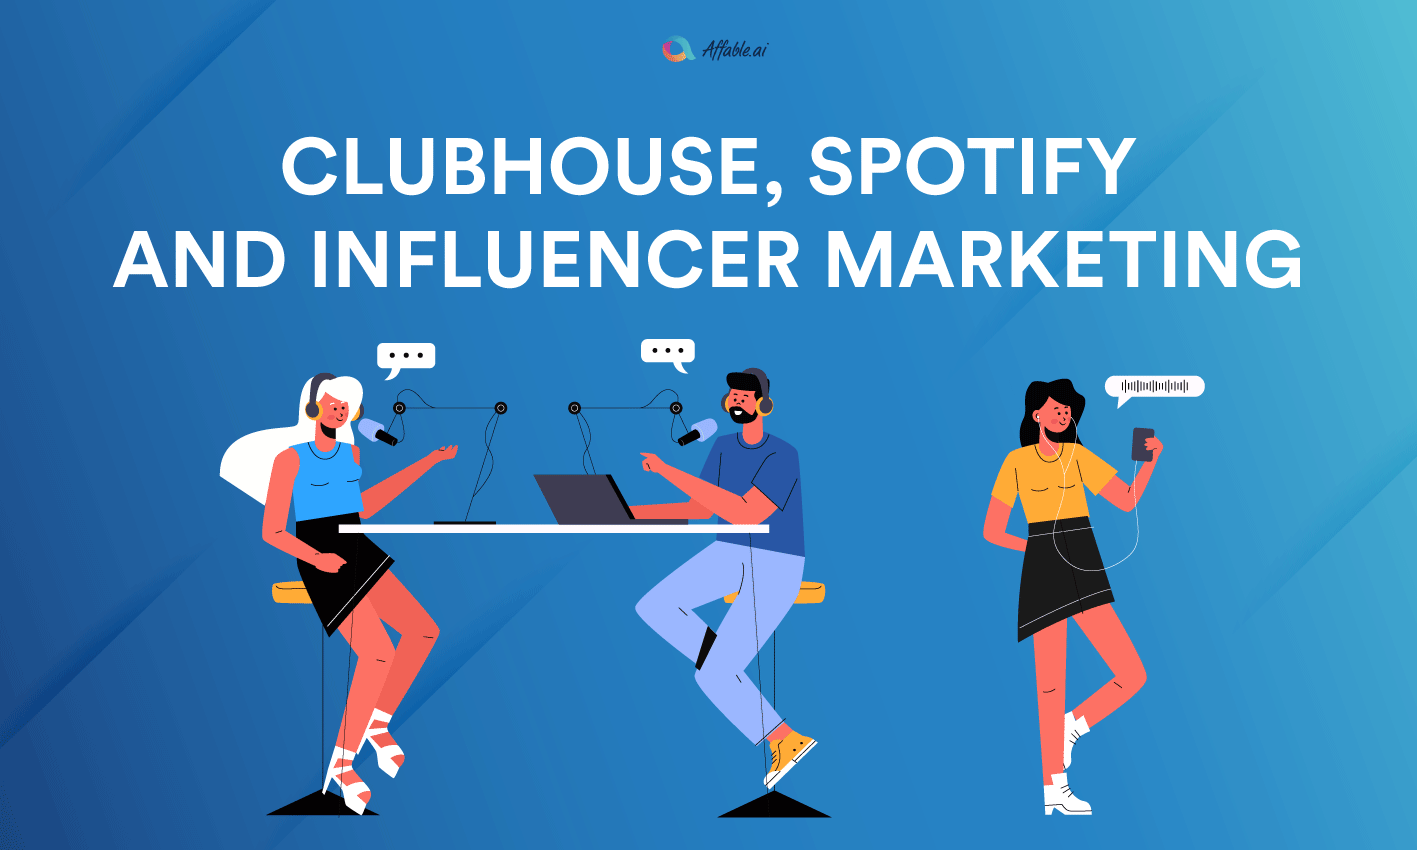 Clubhouse, Spotify and Influencer Marketing